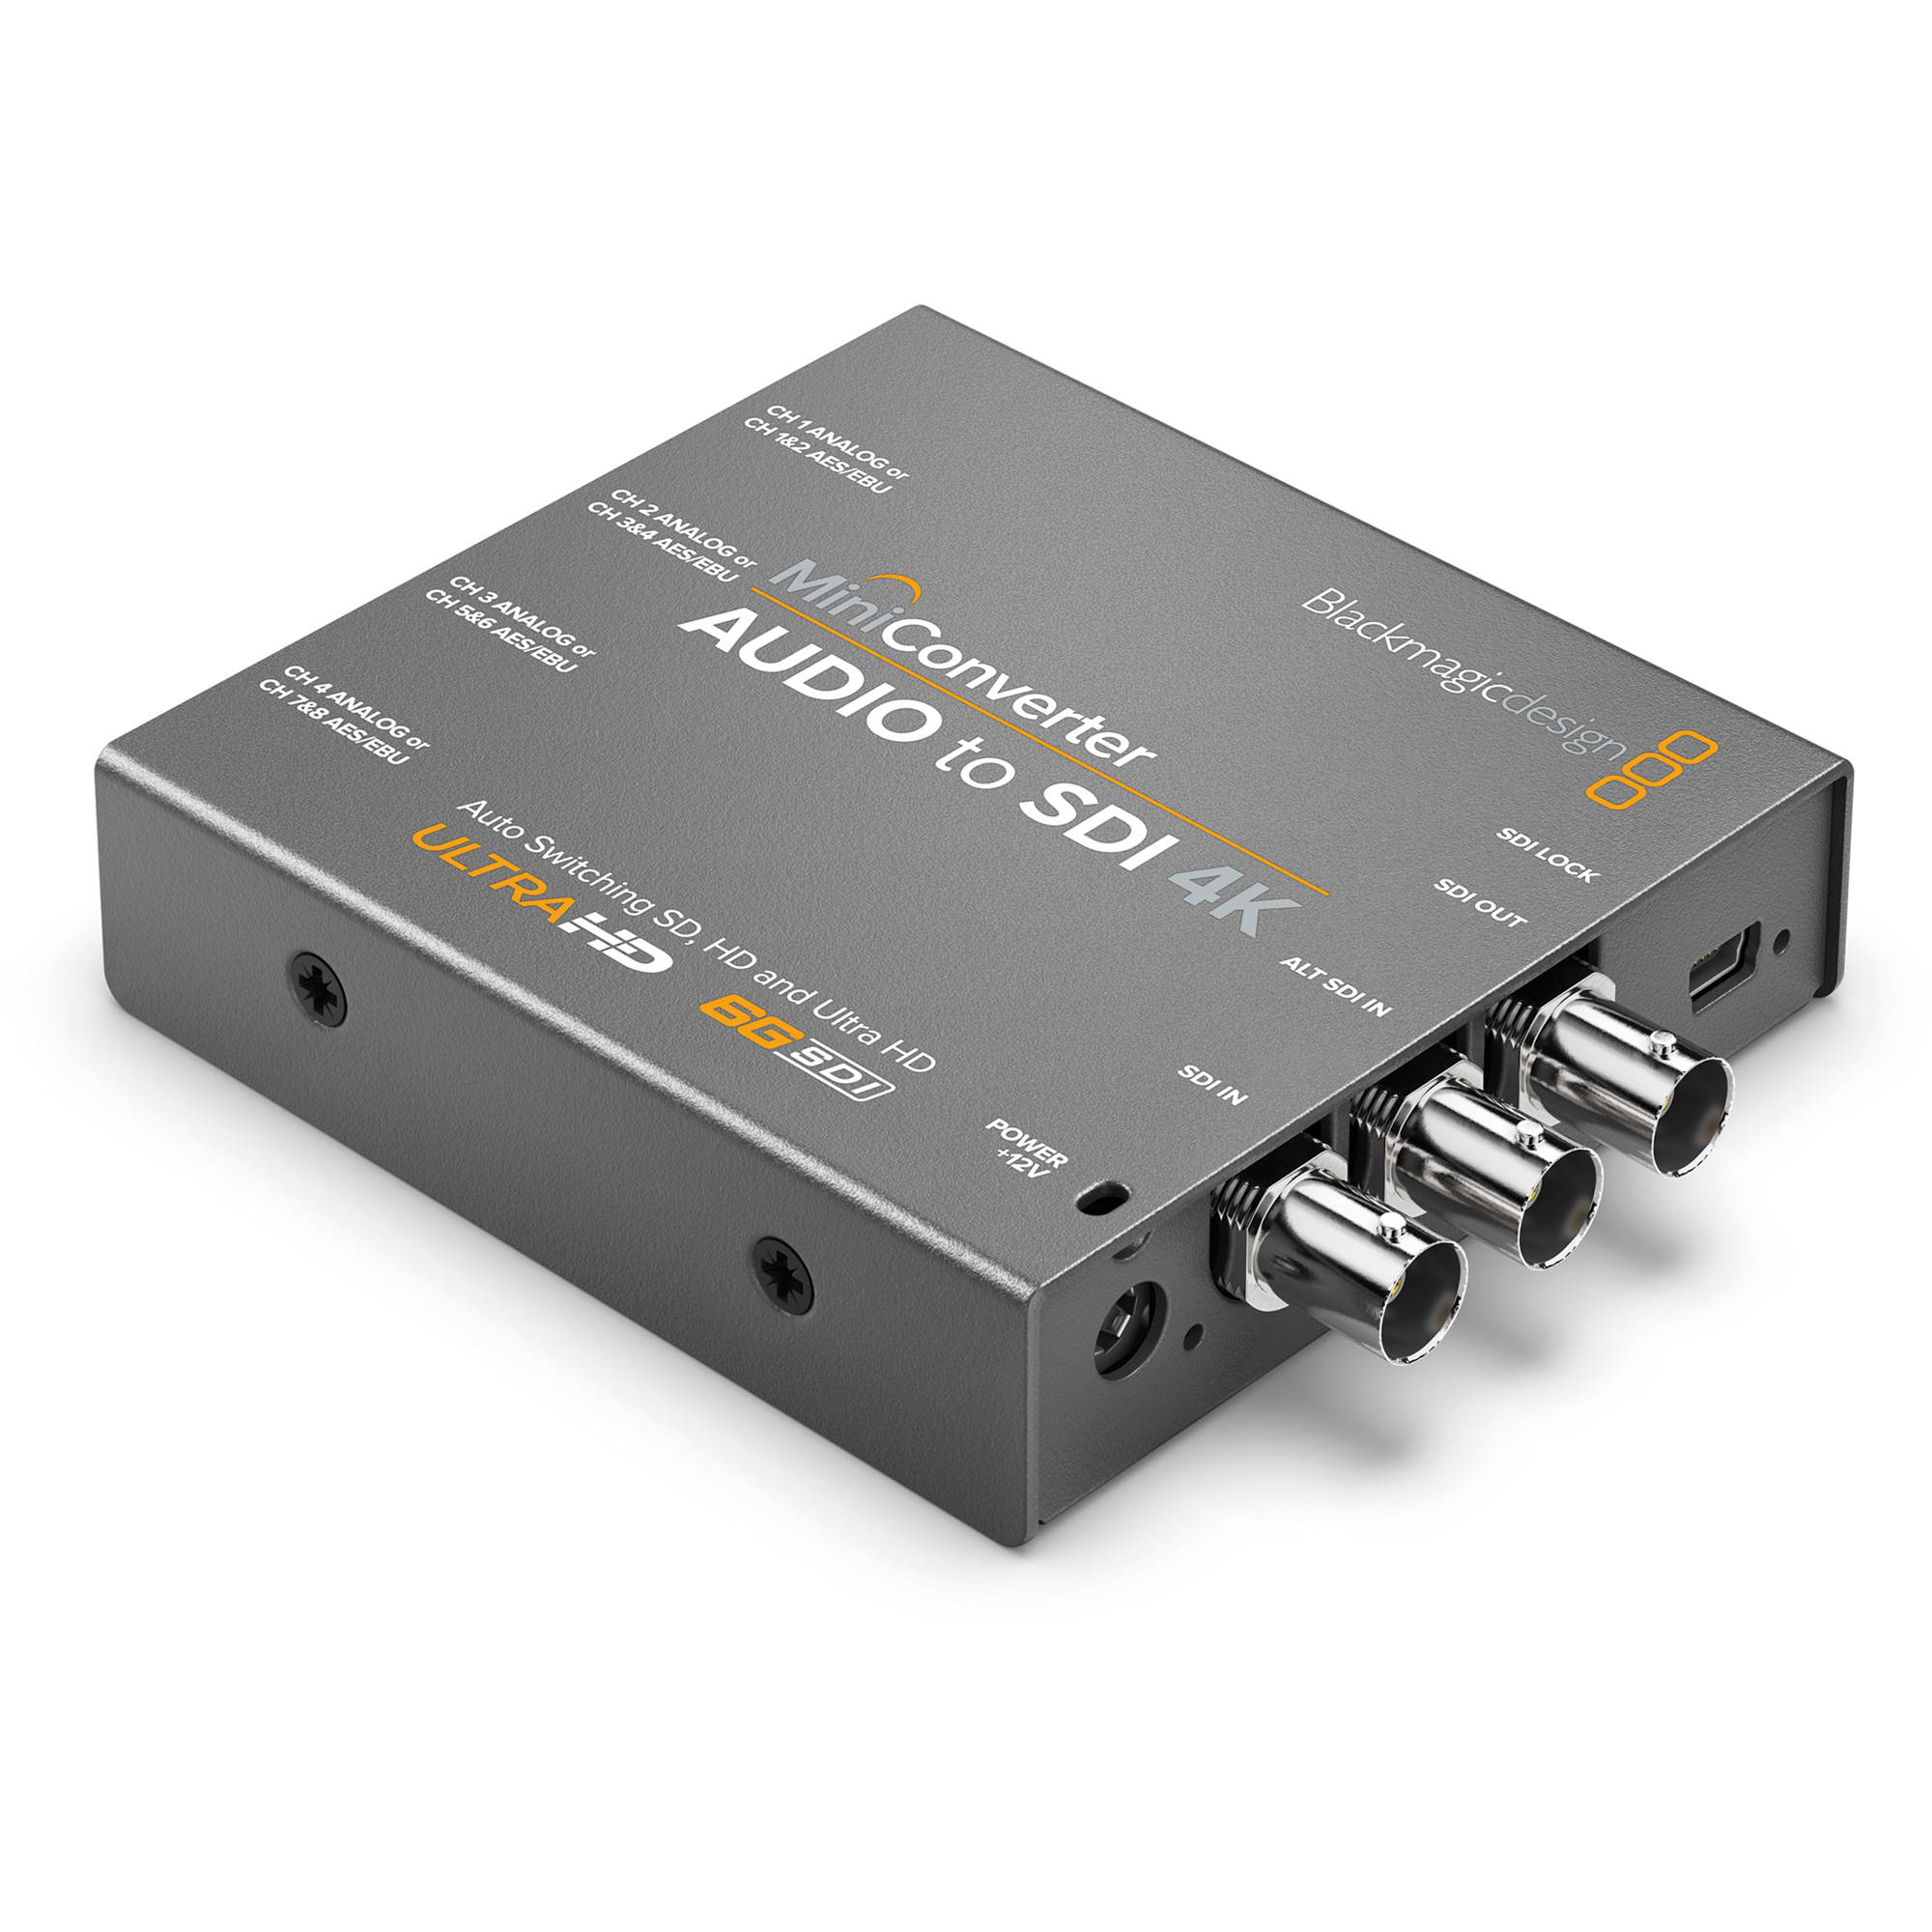 Blackmagic Design Mini Converter Audio to SDI 4K (BM-CONVMCAUDS4K)